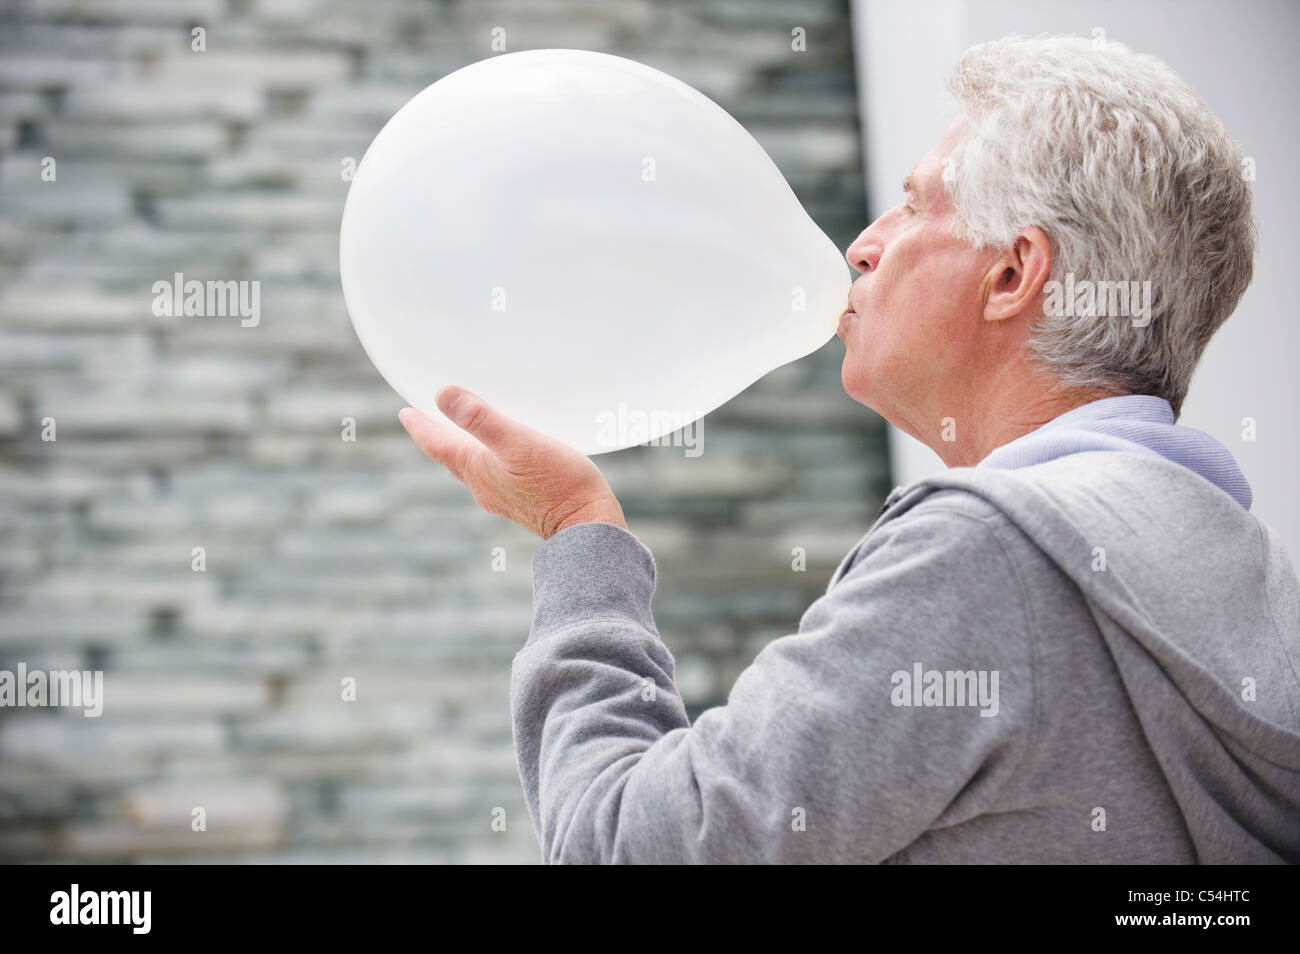 Close-up of a senior man blowing a balloon - Stock Image